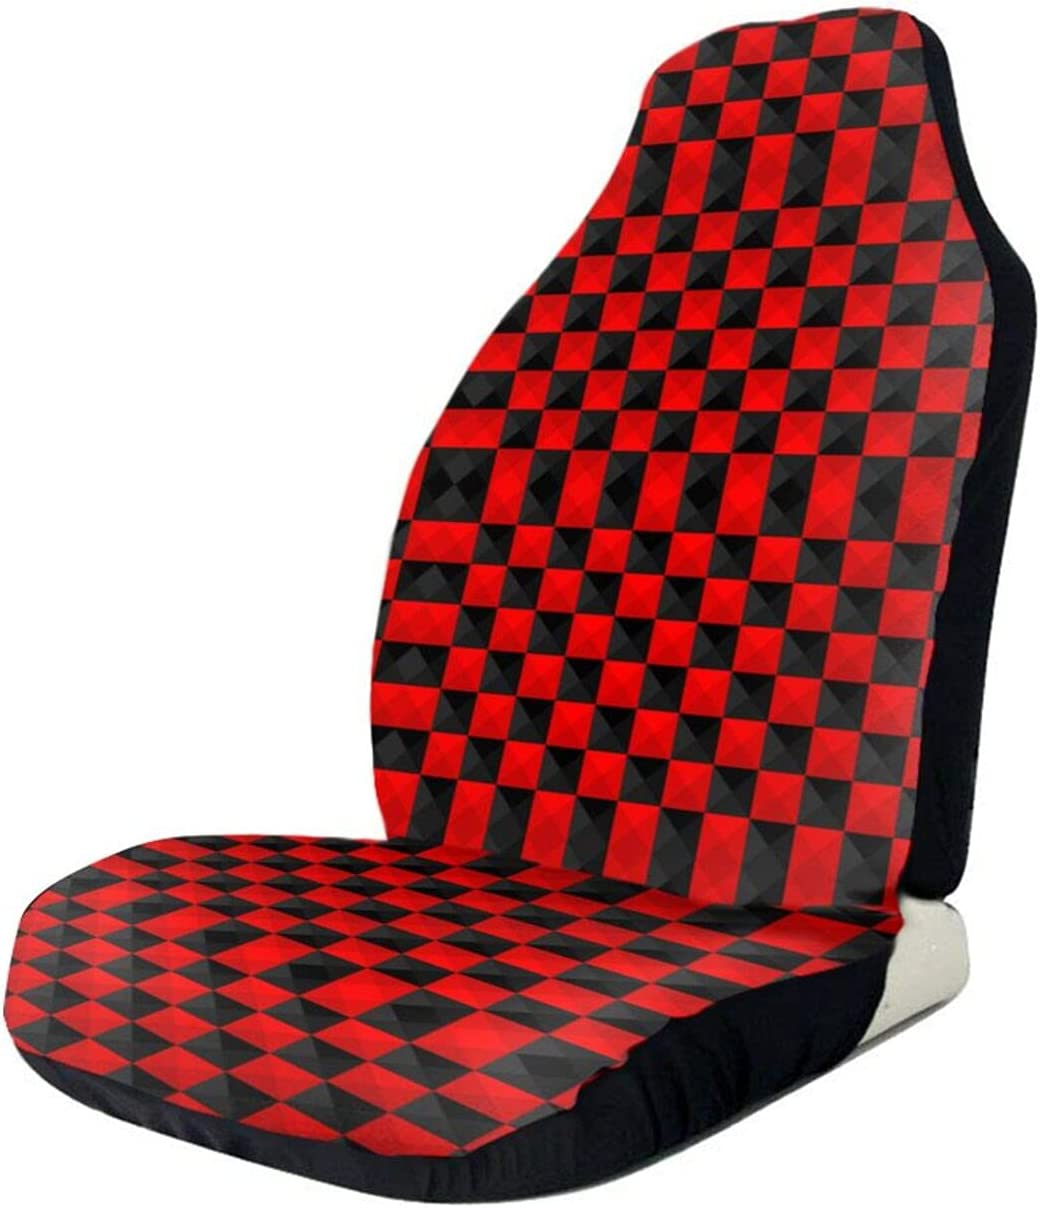 KAMIZE 23D Car Seat Quantity limited Covers 2021 model Auto Truck F Low SUV Back Vehicle